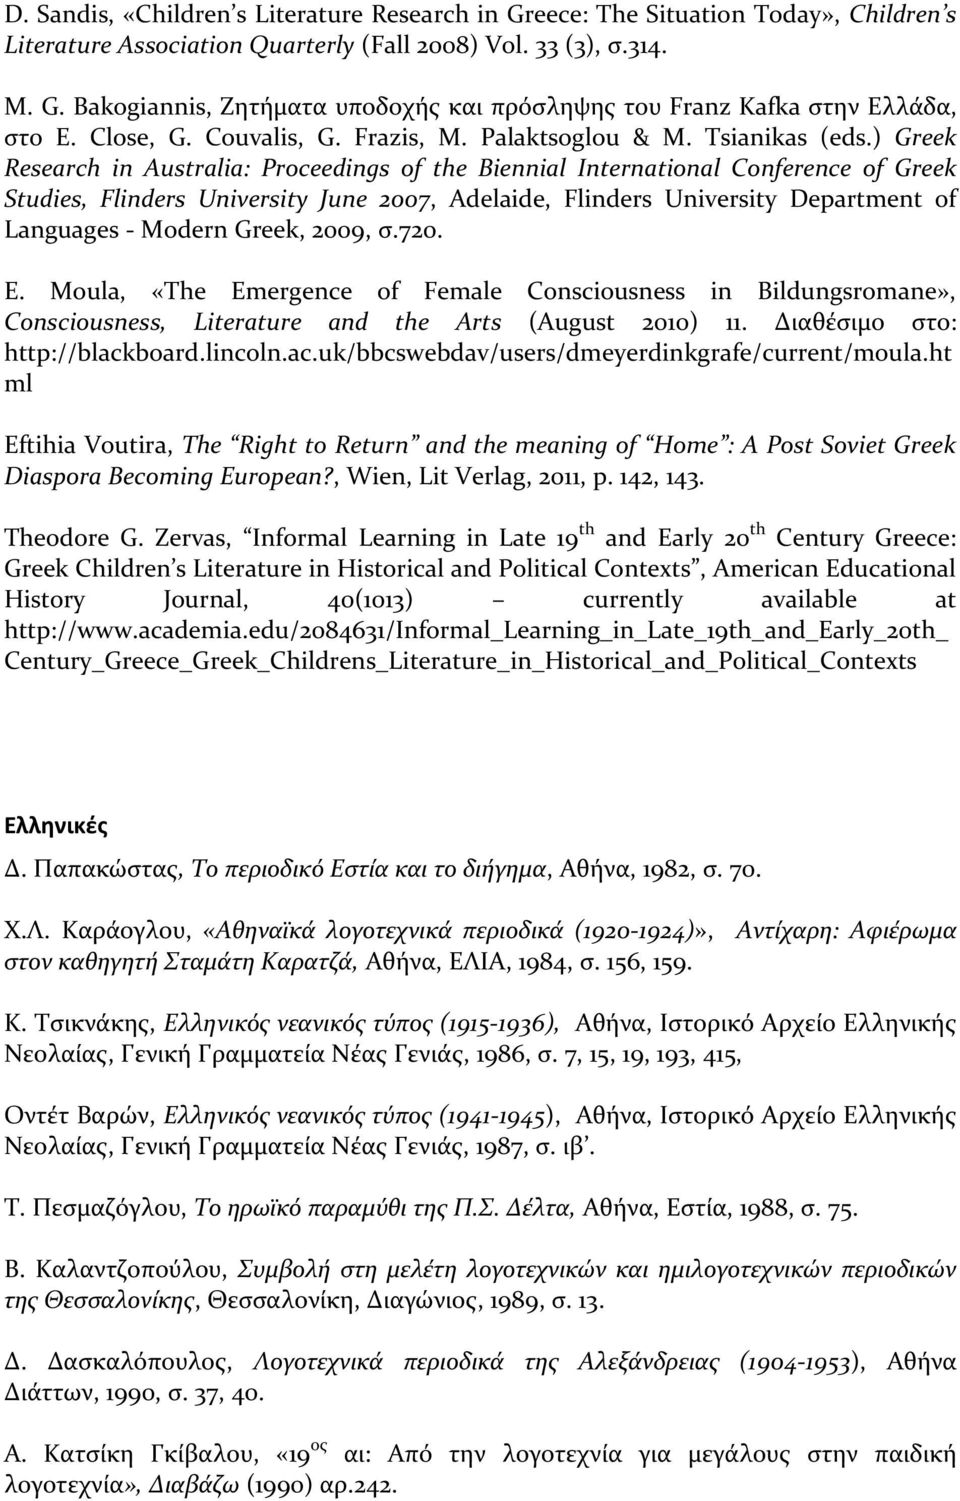 ) Greek Research in Australia: Proceedings of the Biennial International Conference of Greek Studies, Flinders University June 2007, Adelaide, Flinders University Department of Languages - Modern